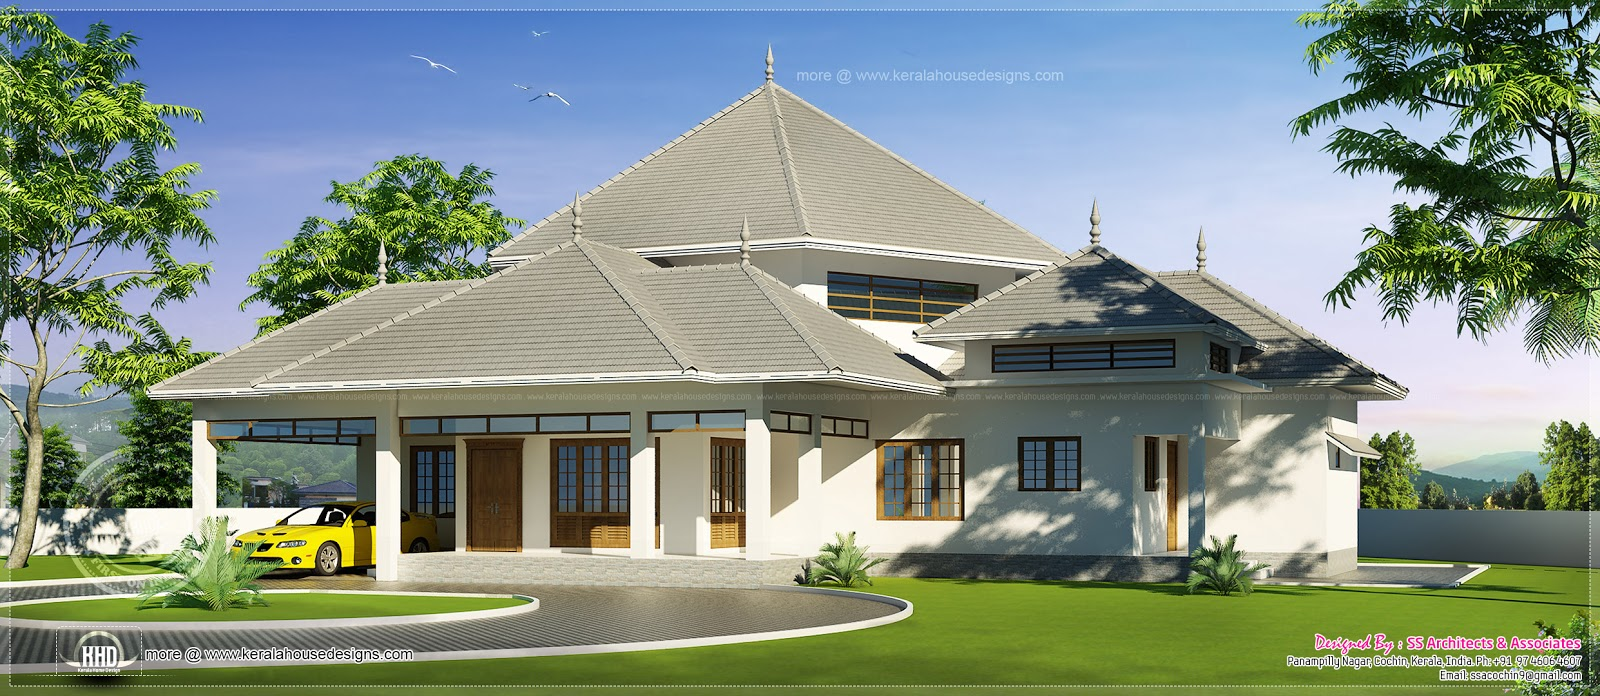 House plans and design modern house roof plans Modern roof design